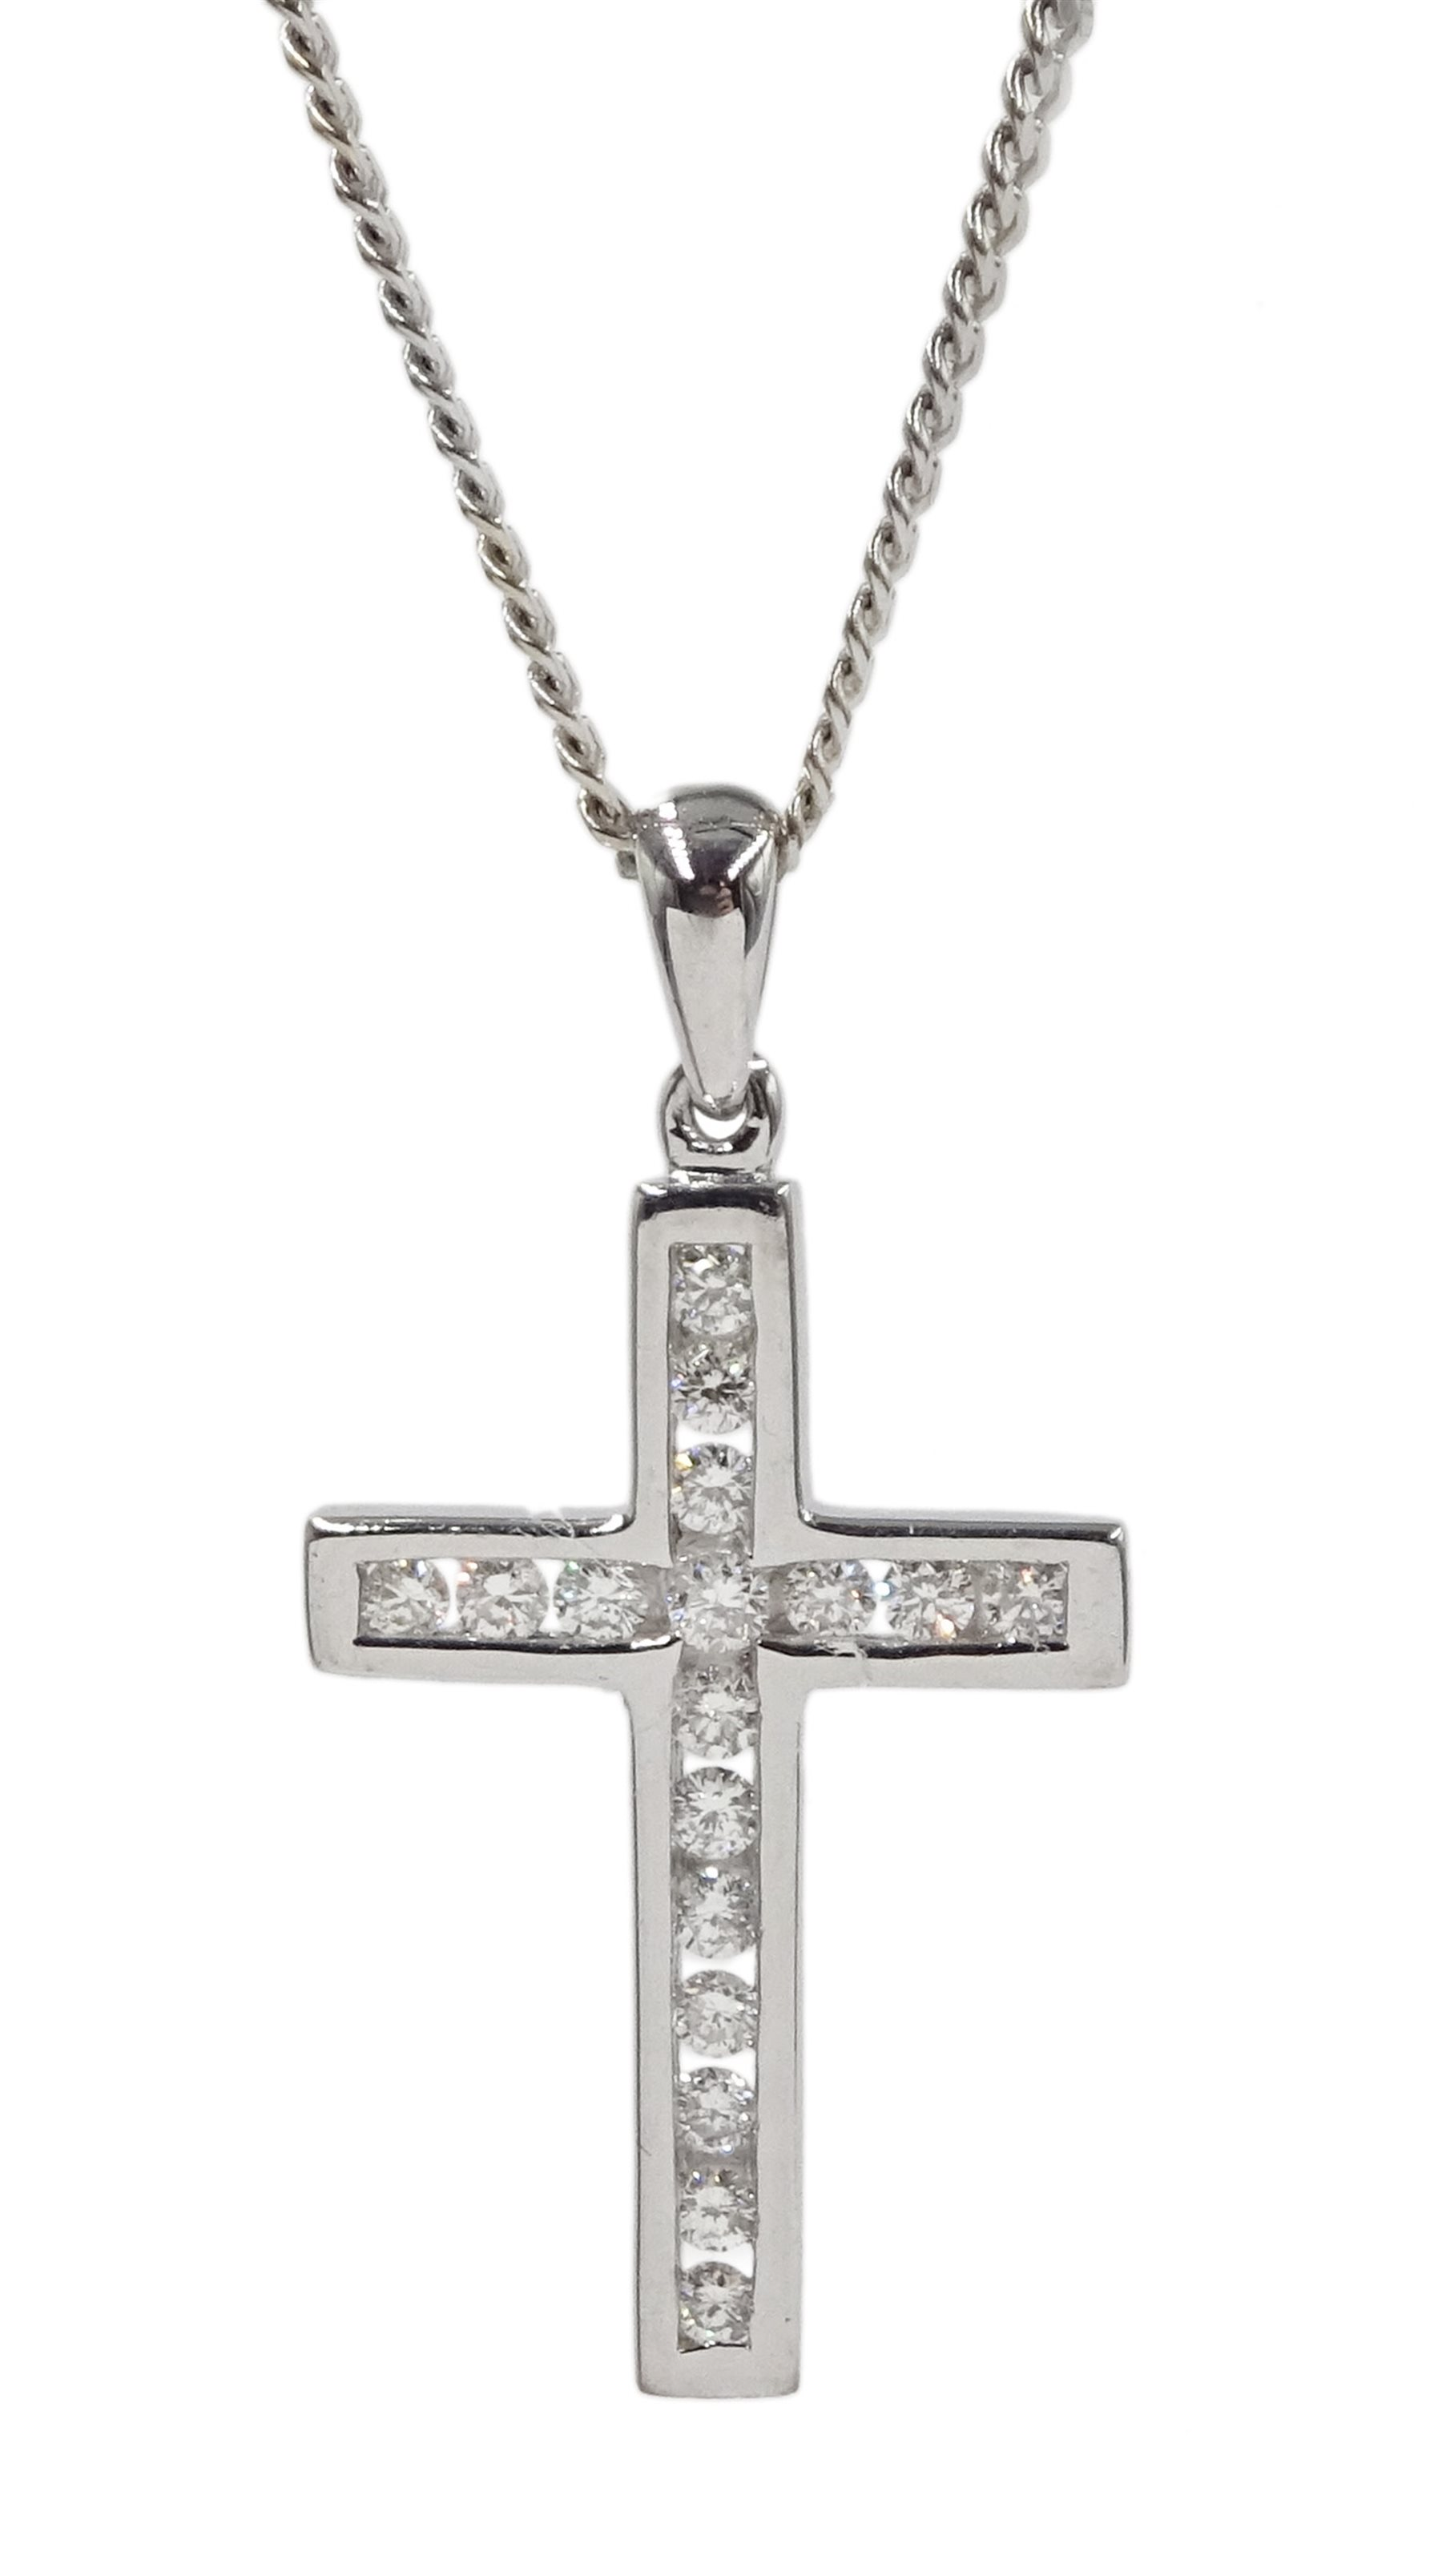 18ct white gold round brilliant cut diamond cross pendant necklace, hallmarked